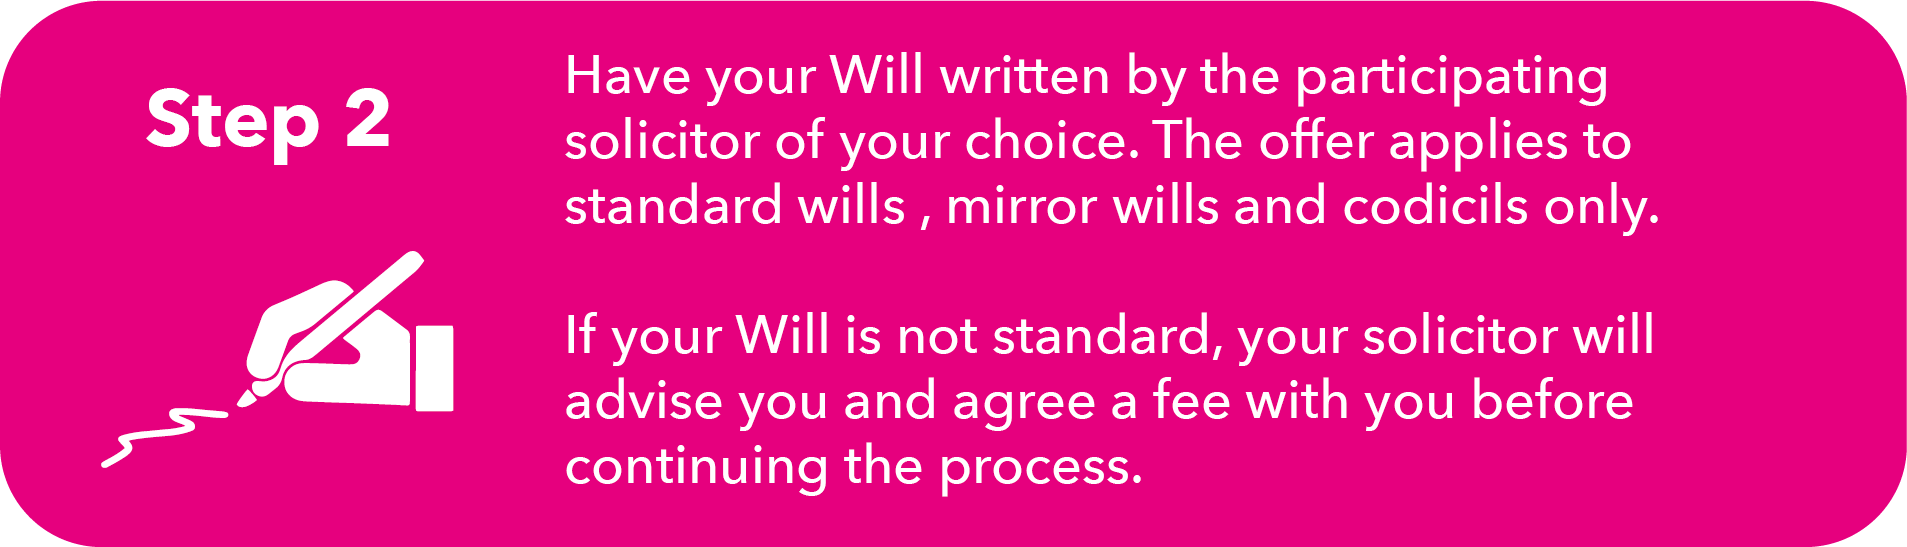 Image with written instructions. Step 2: Have your will written by the participating solicitor of your choice. The offer applies to standard wills, mirror wills and codicils only. If your will is not standard, your solicitor will advise you and agree a fee with you before continuing the process.